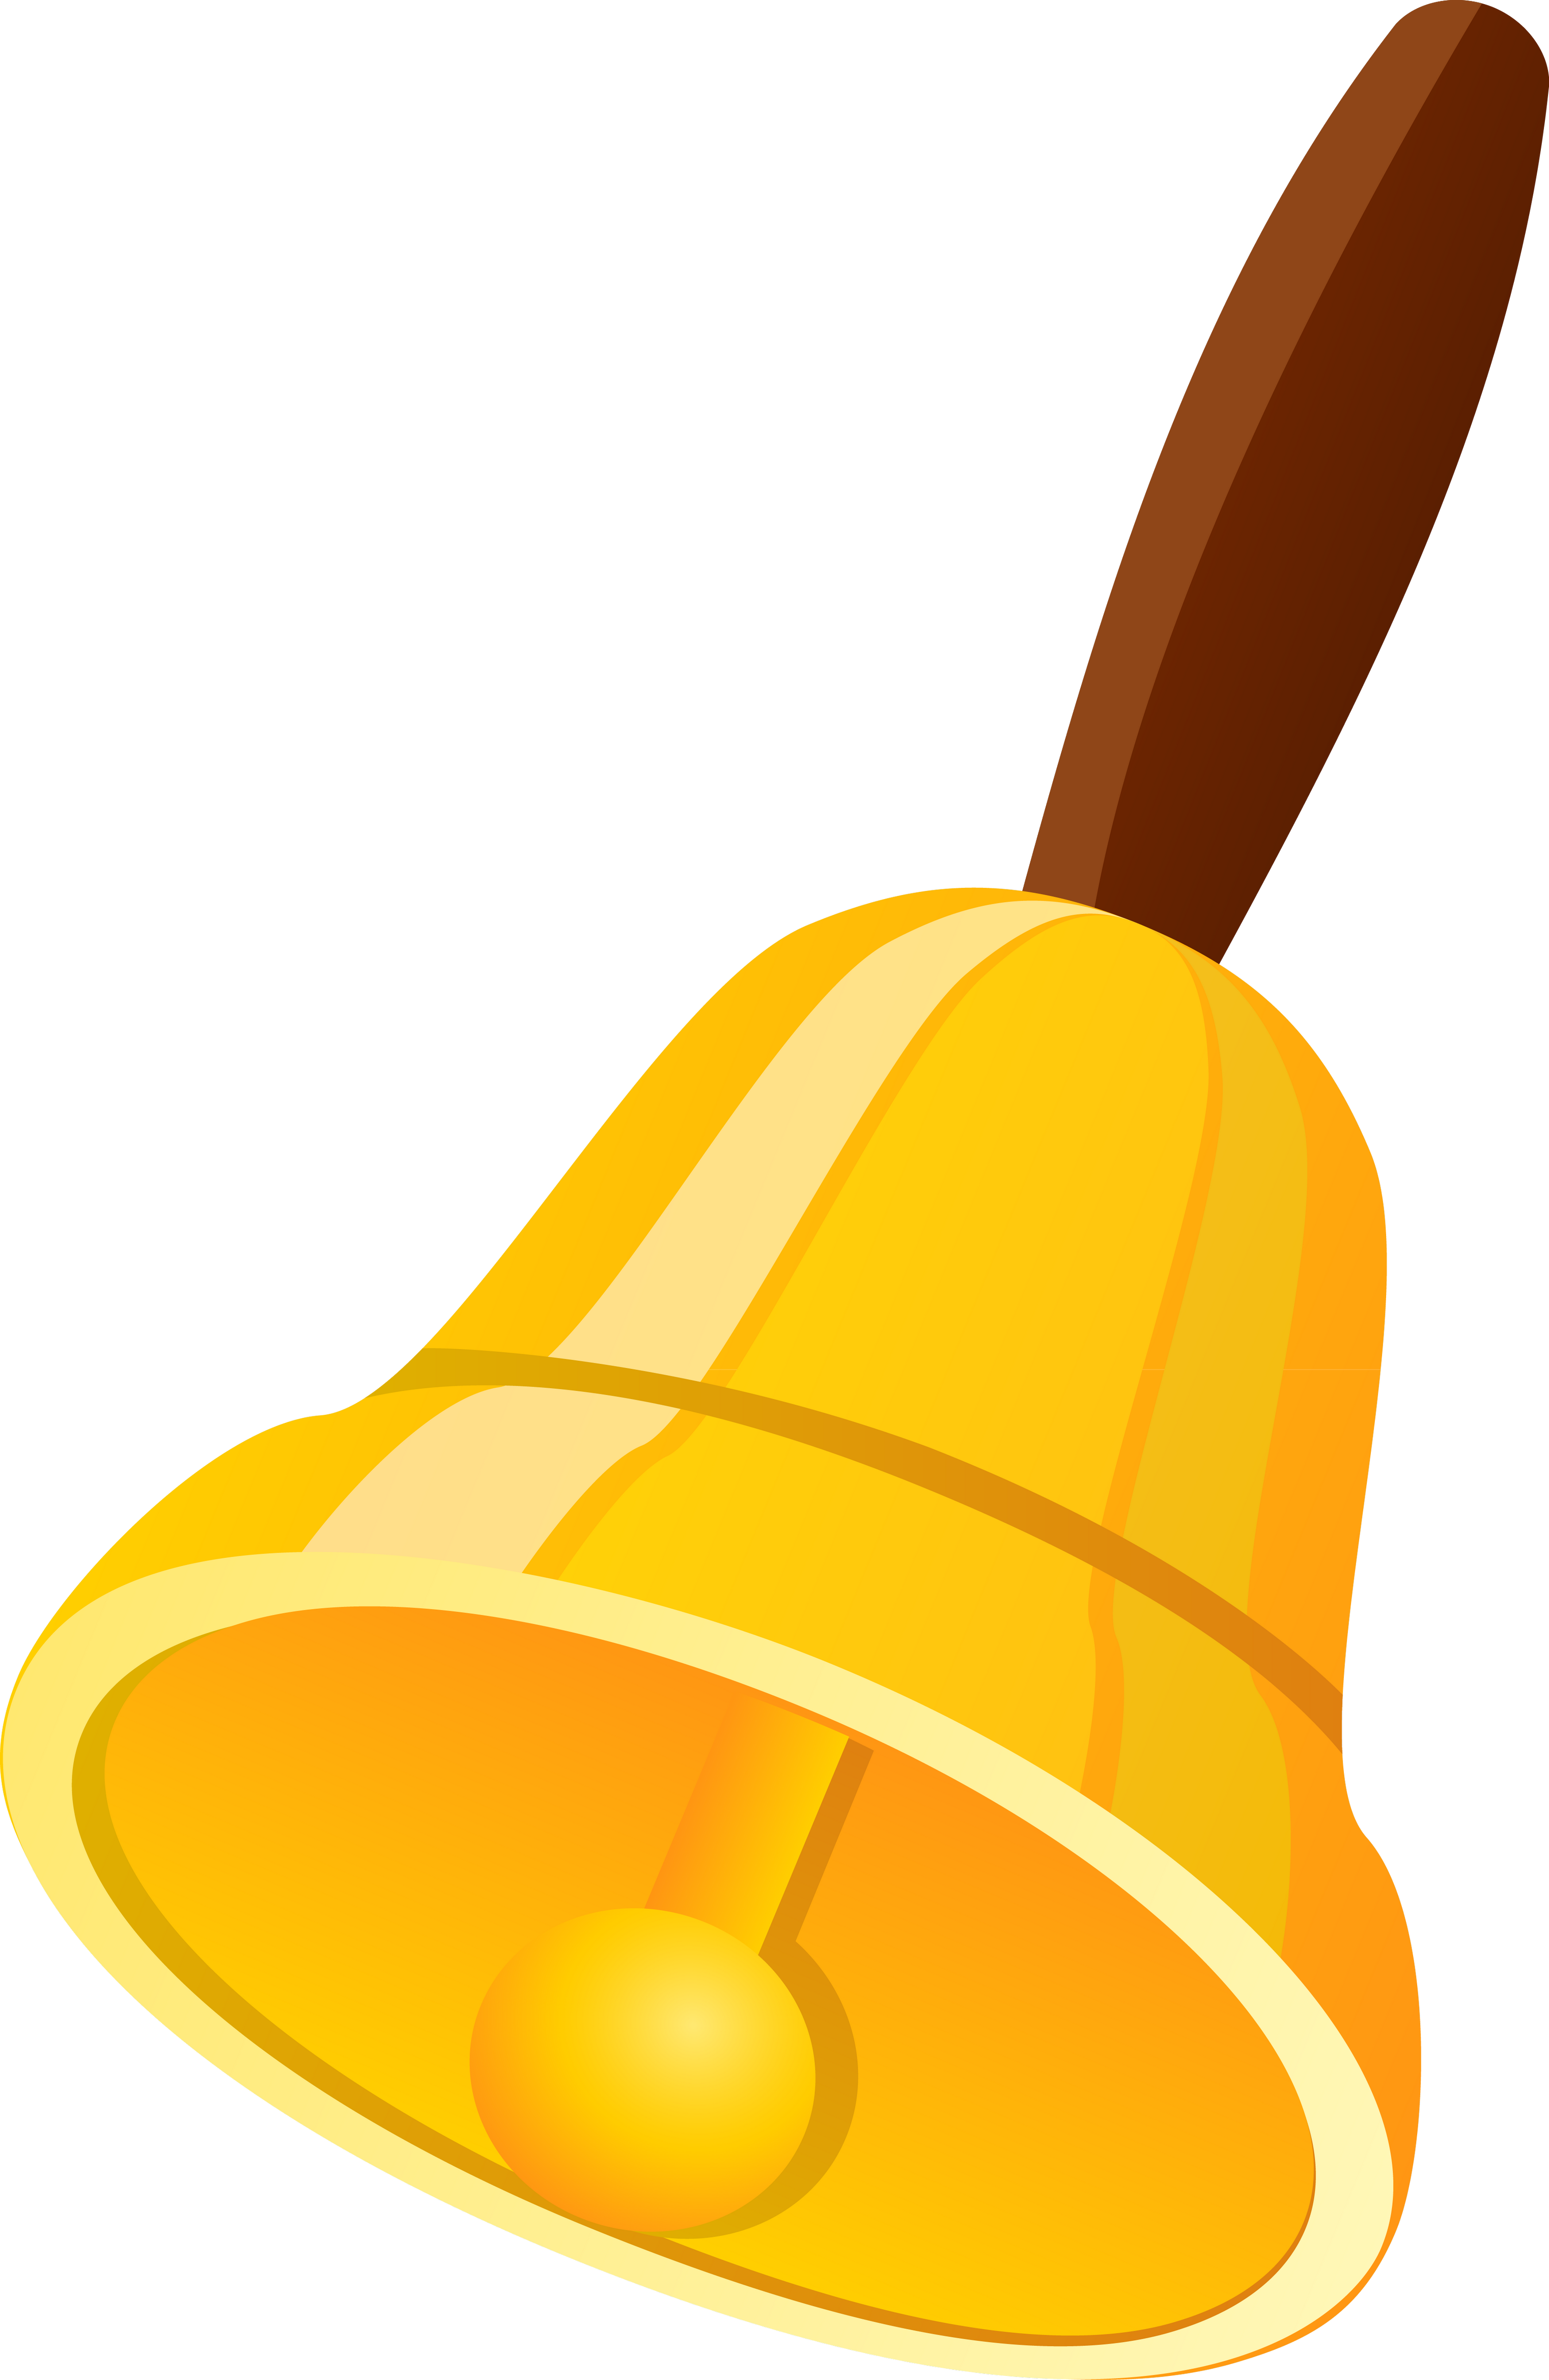 Bell clipart cartoon. Png images of transparent